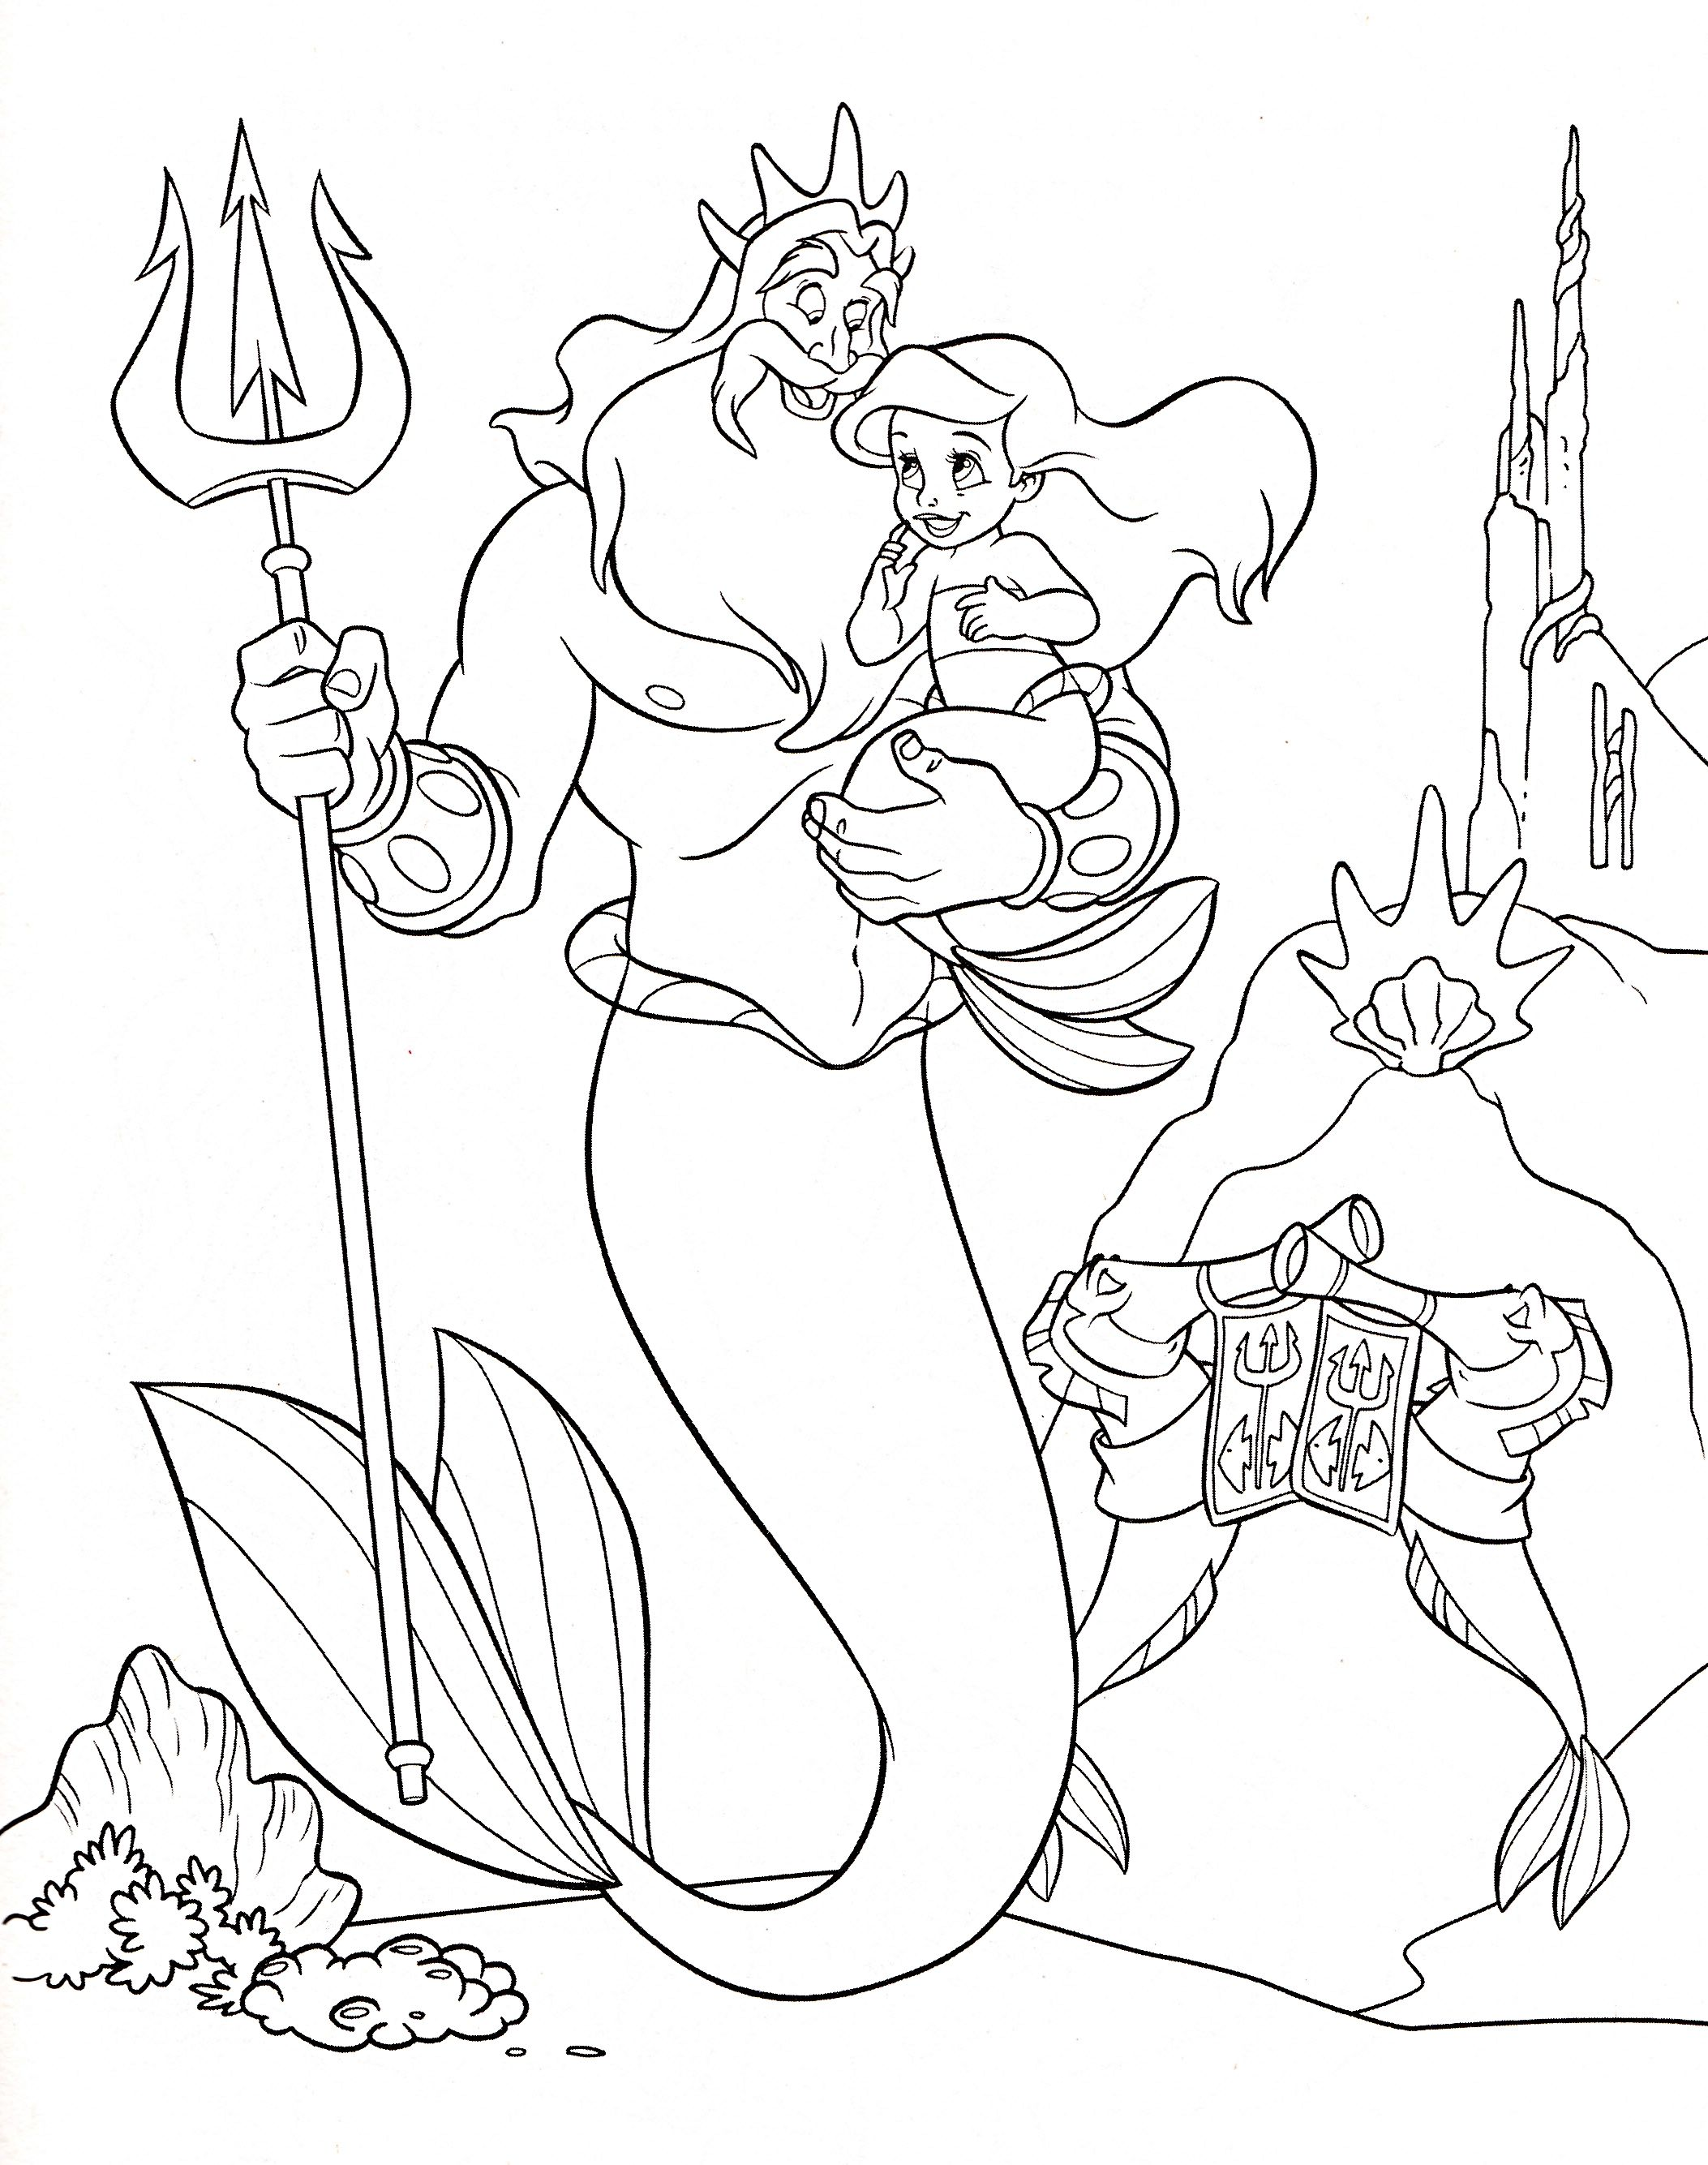 Coloring book disney princess - Walt Disney Coloring Page Of King Triton And Princess Ariel From The Little Mermaid Ariel S Beginning Hd Wallpaper And Background Photos Of Walt Disney